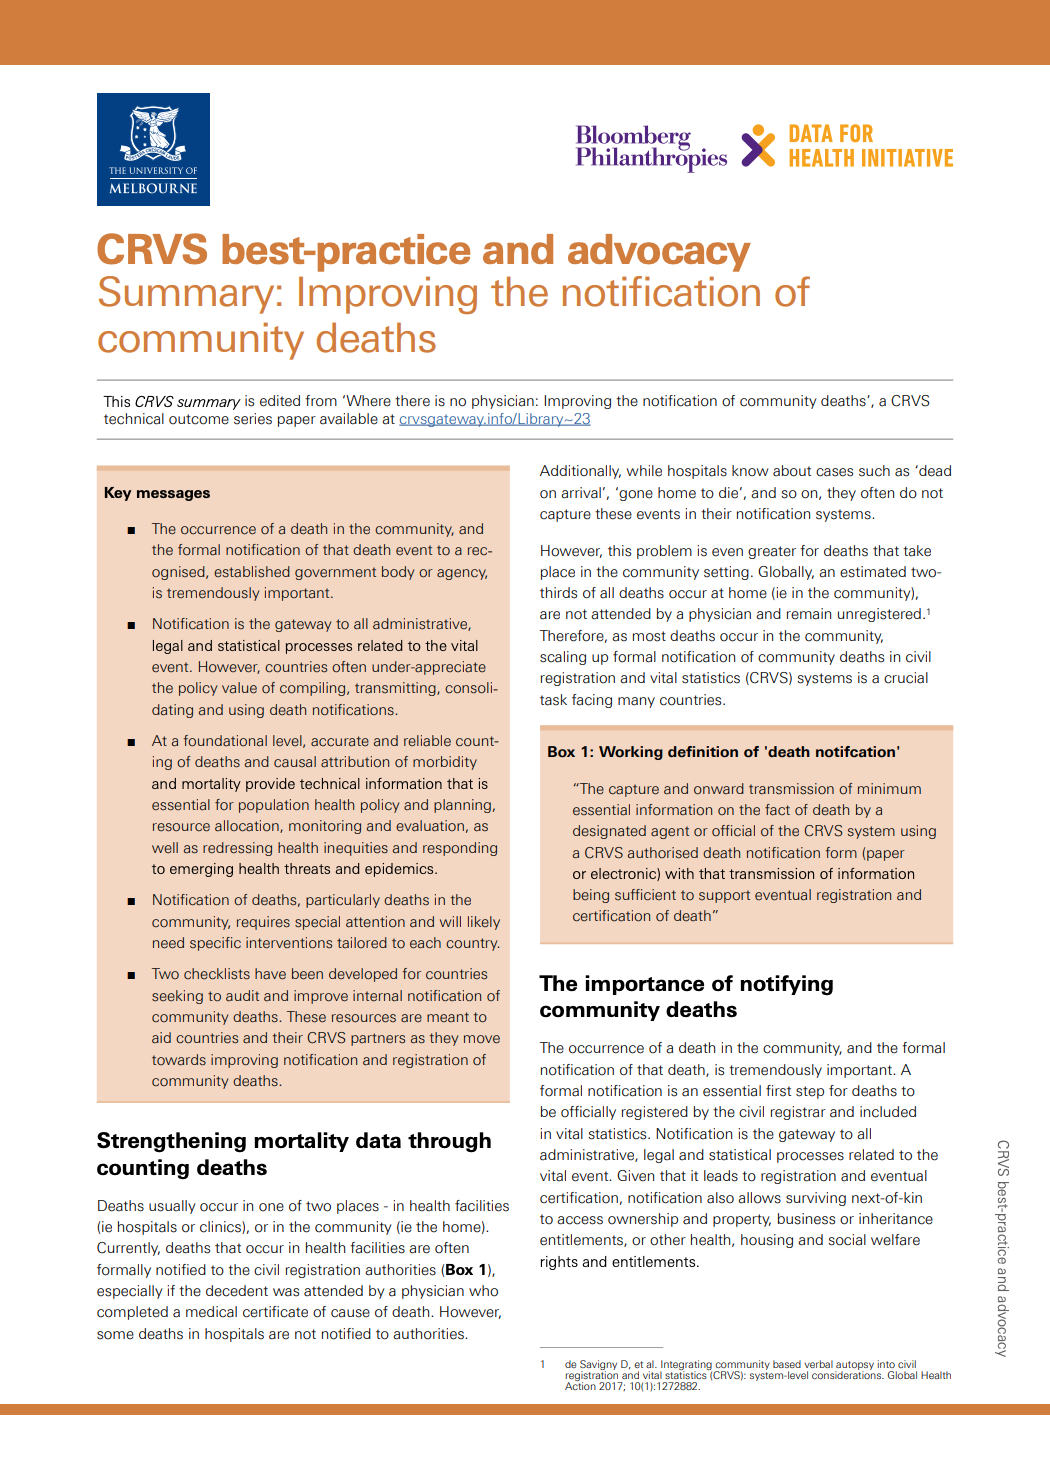 CRVS best-practice and advocacy Summary: Improving the notification of community deaths thumbnail